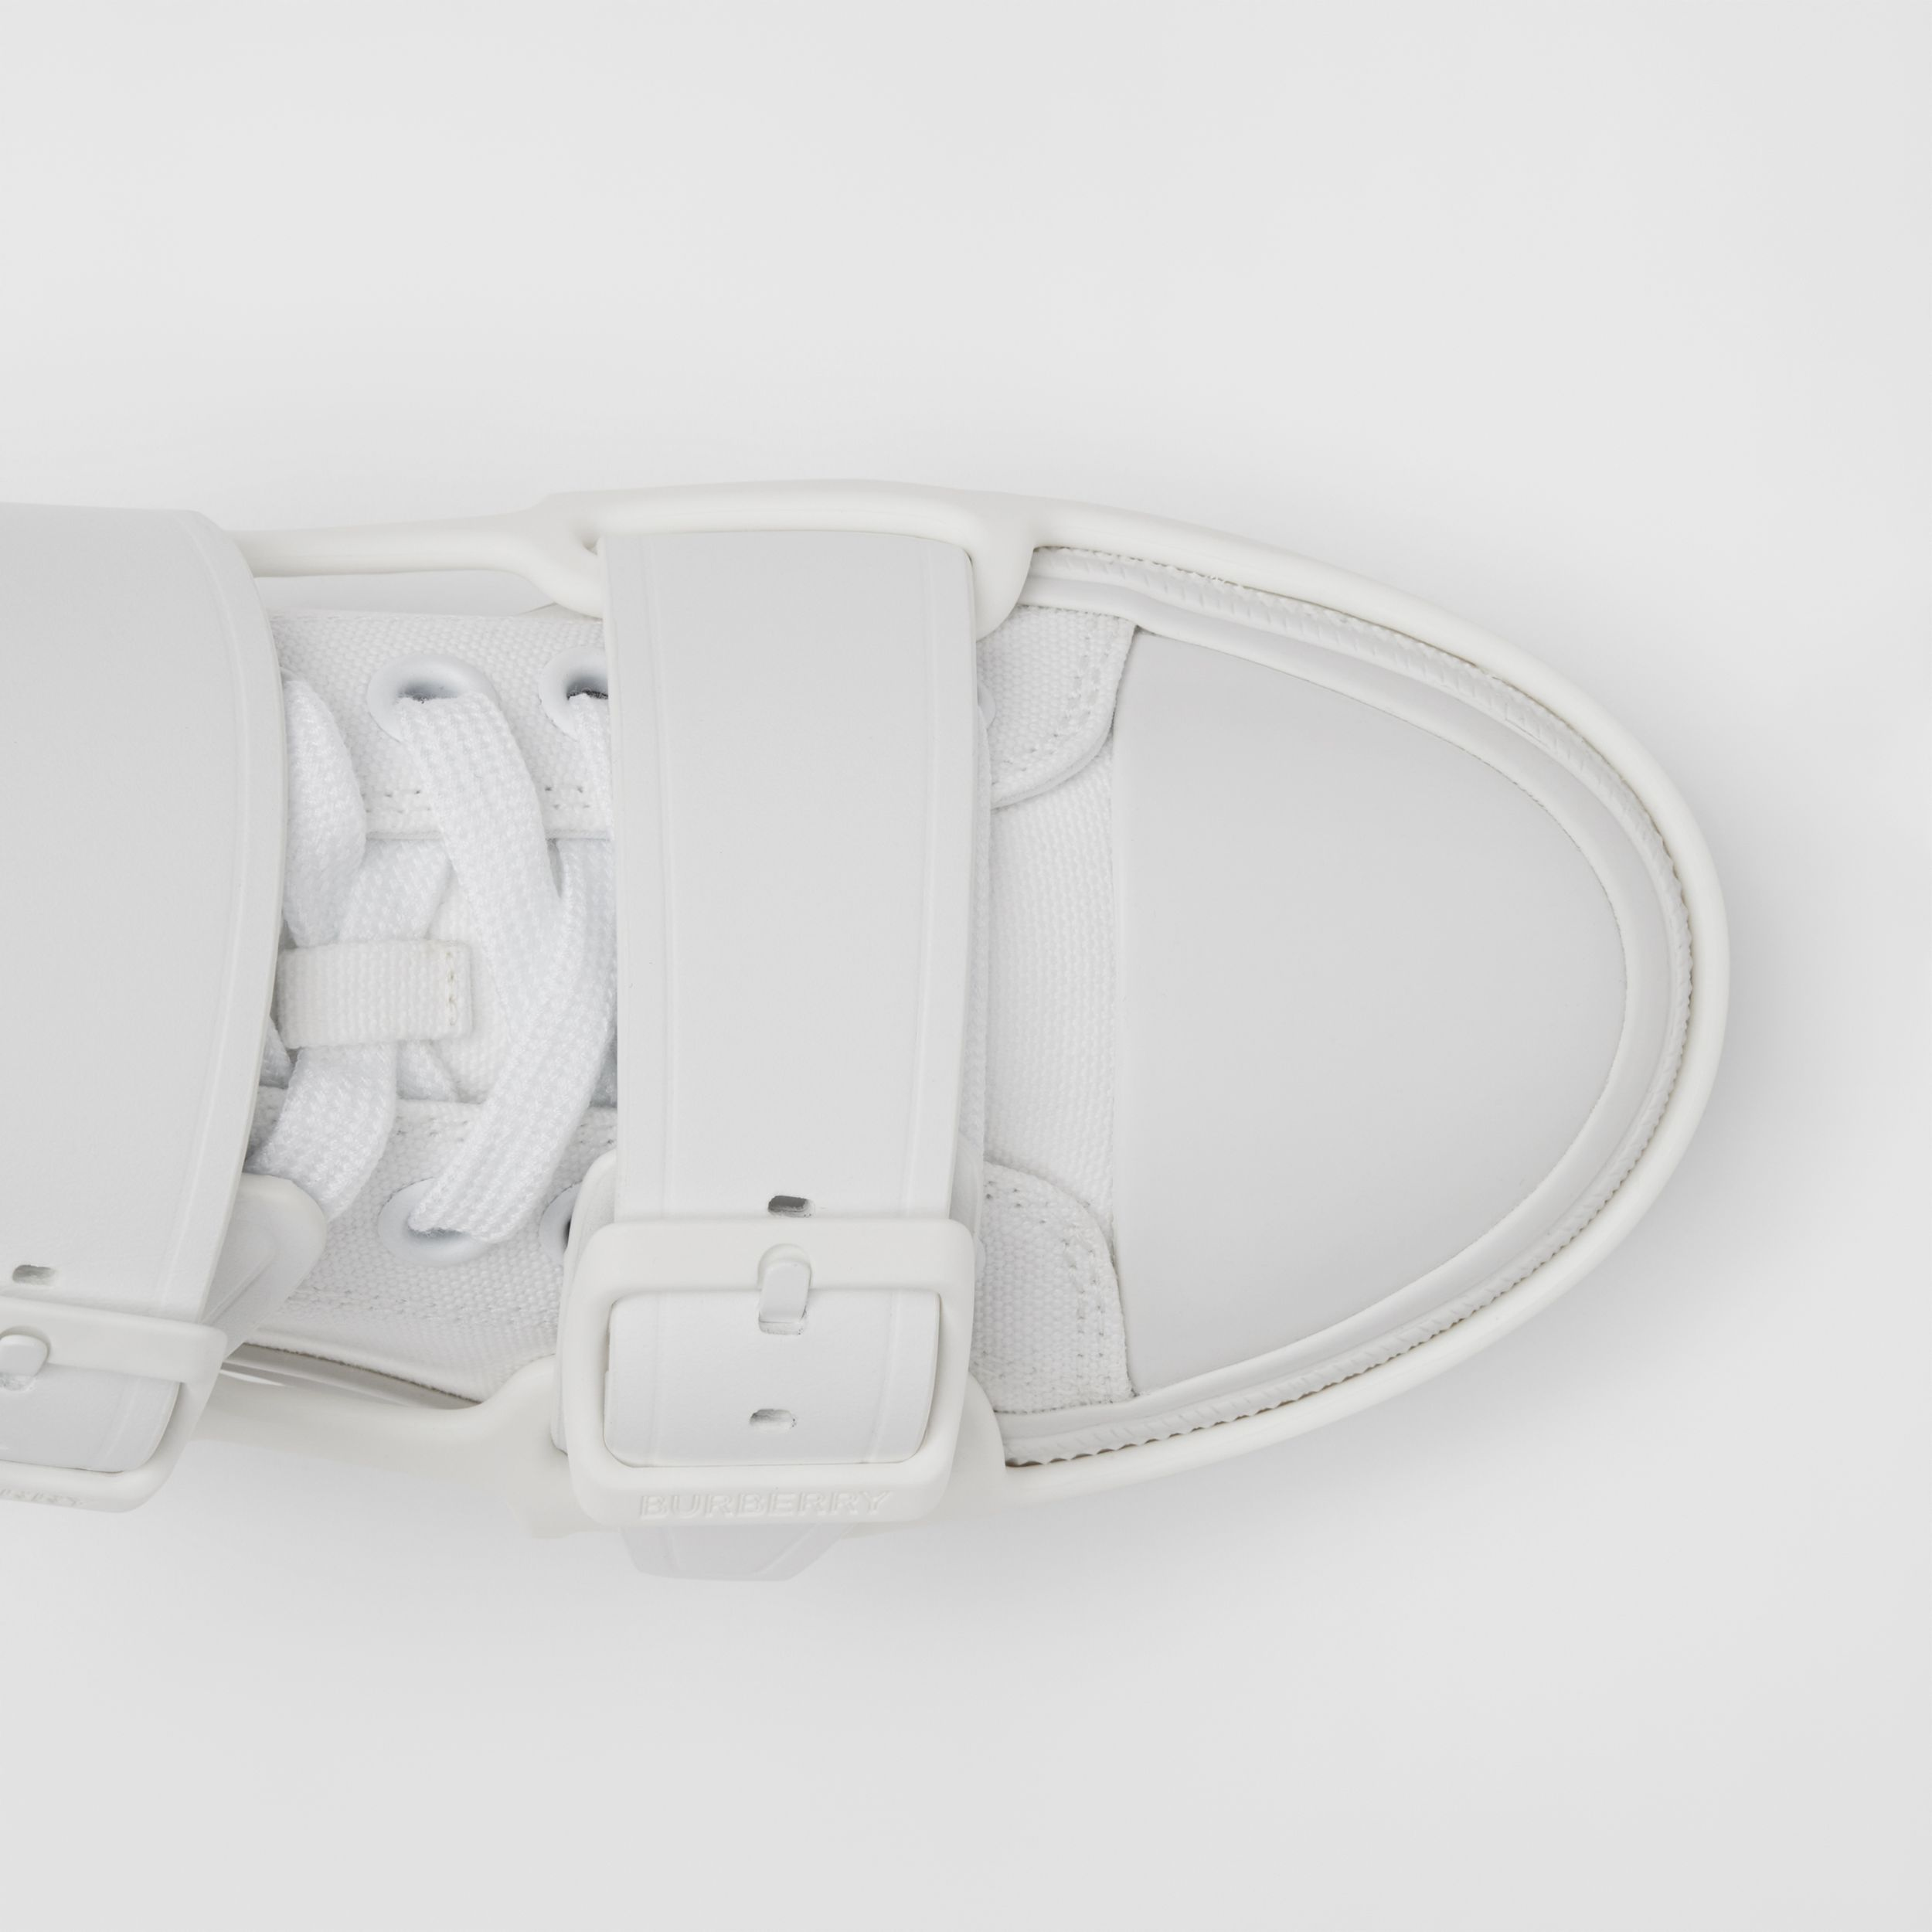 Cotton and Leather Webb Sneakers in White - Women | Burberry United Kingdom - 2